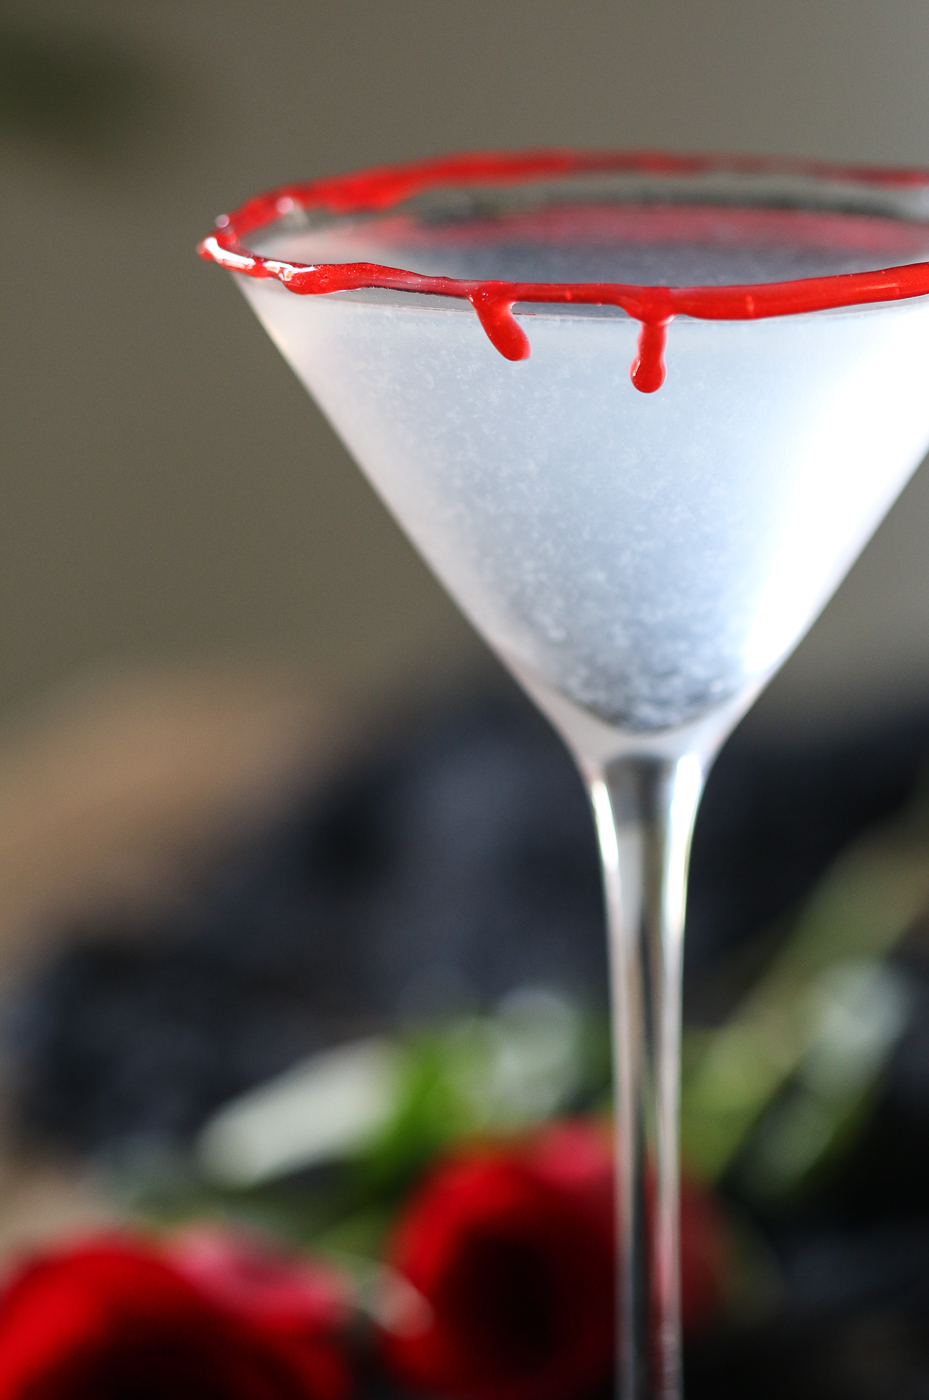 Blood rimmed Halloween cocktail glass and roses